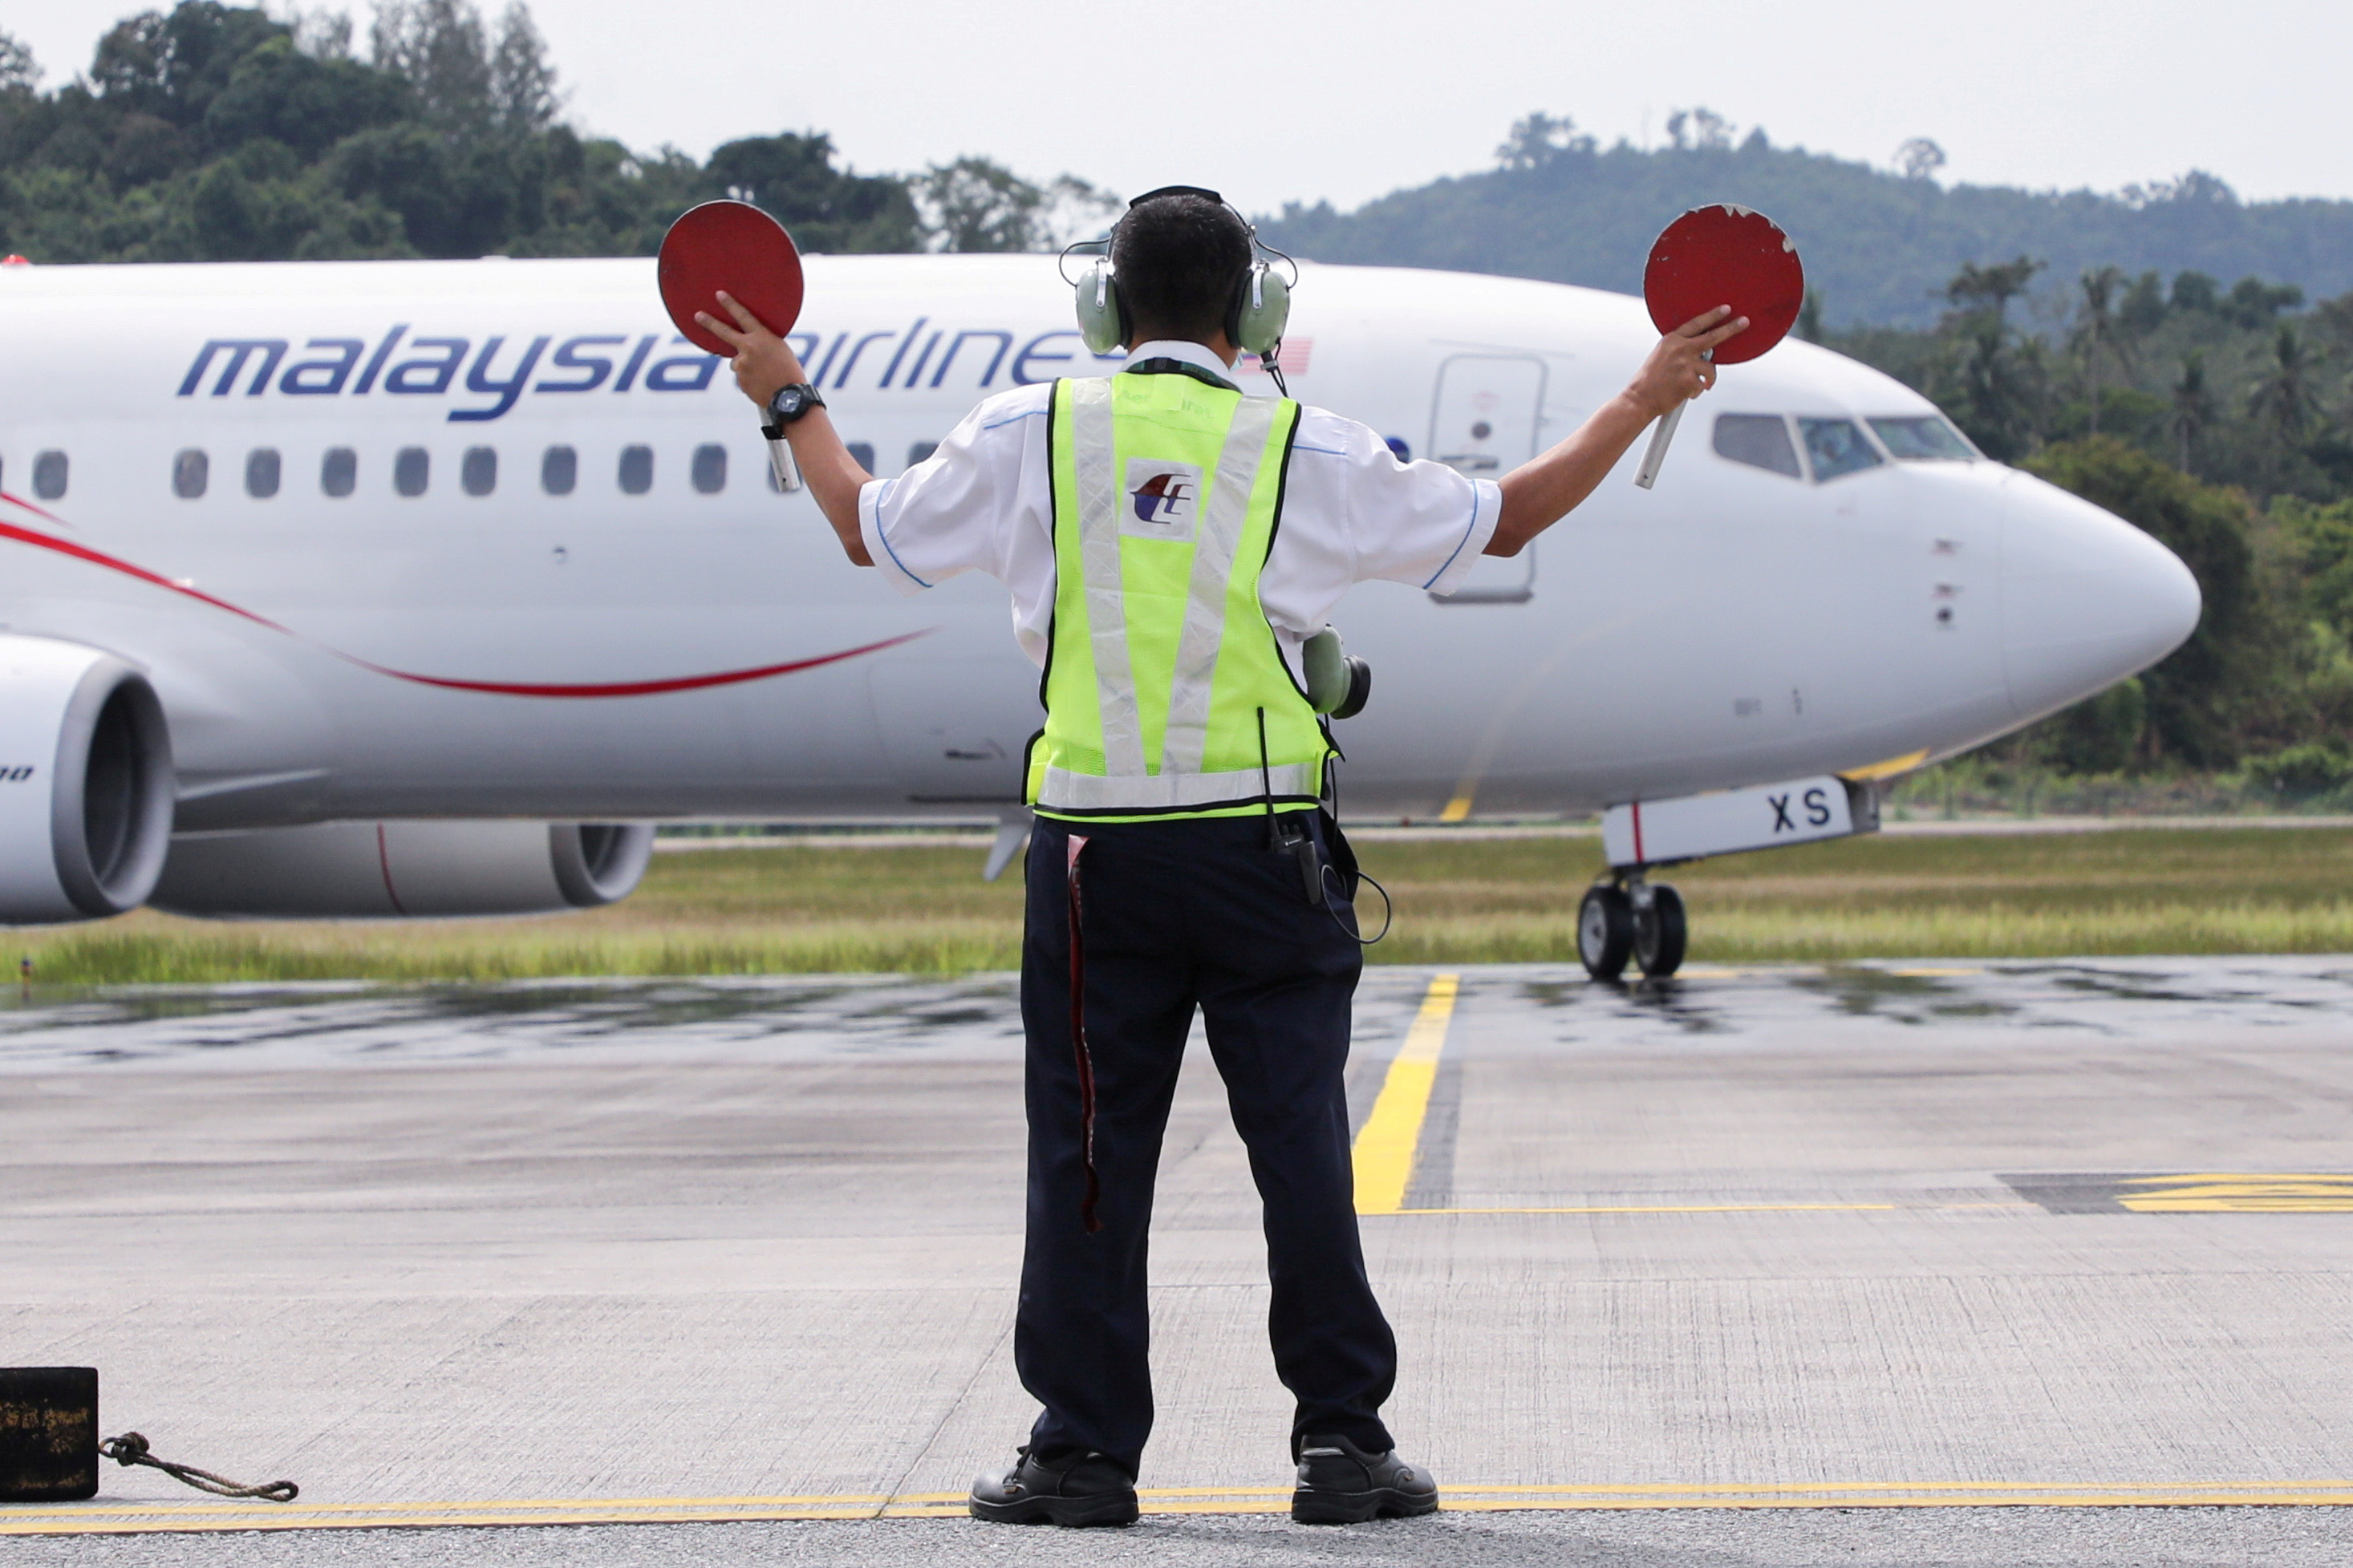 A Malaysia Airlines plane carrying the first batch of tourists arrives as Langkawi reopens to domestic tourists, amid the coronavirus disease (COVID-19) pandemic, in Malaysia September 16, 2021. REUTERS/Lim Huey Teng/File Photo